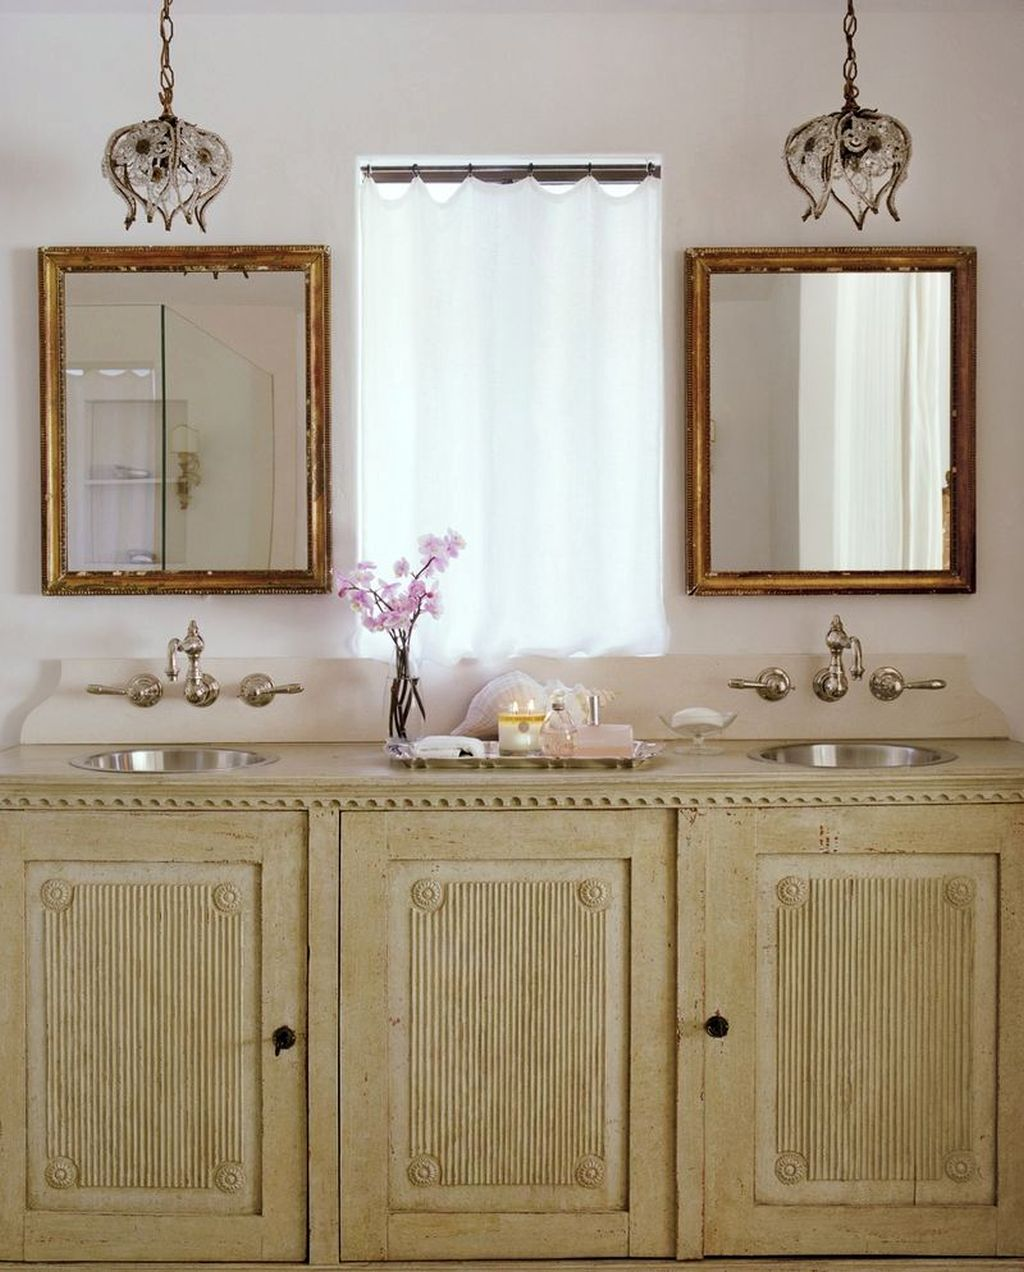 Master Bathroom Vanity Lighting Ideas : energy saving master bathroom lighting ideas